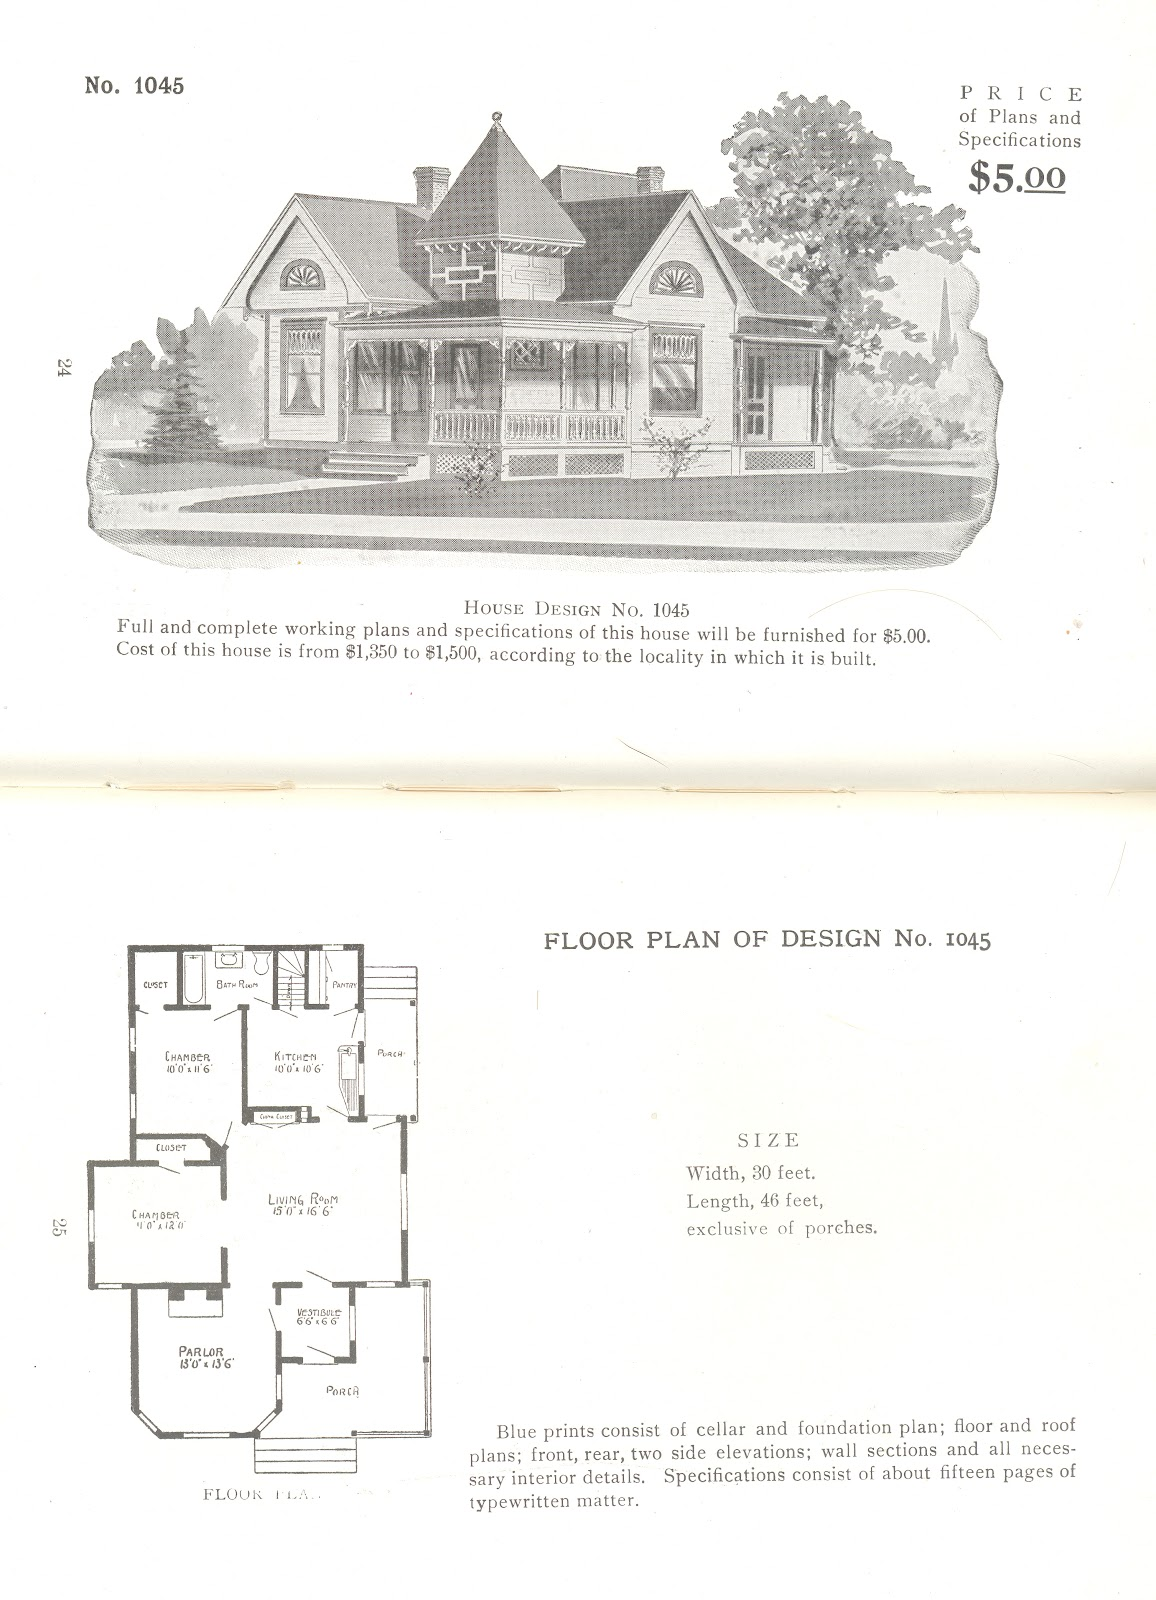 Old photos of architecture: 1908 Radford Architectural